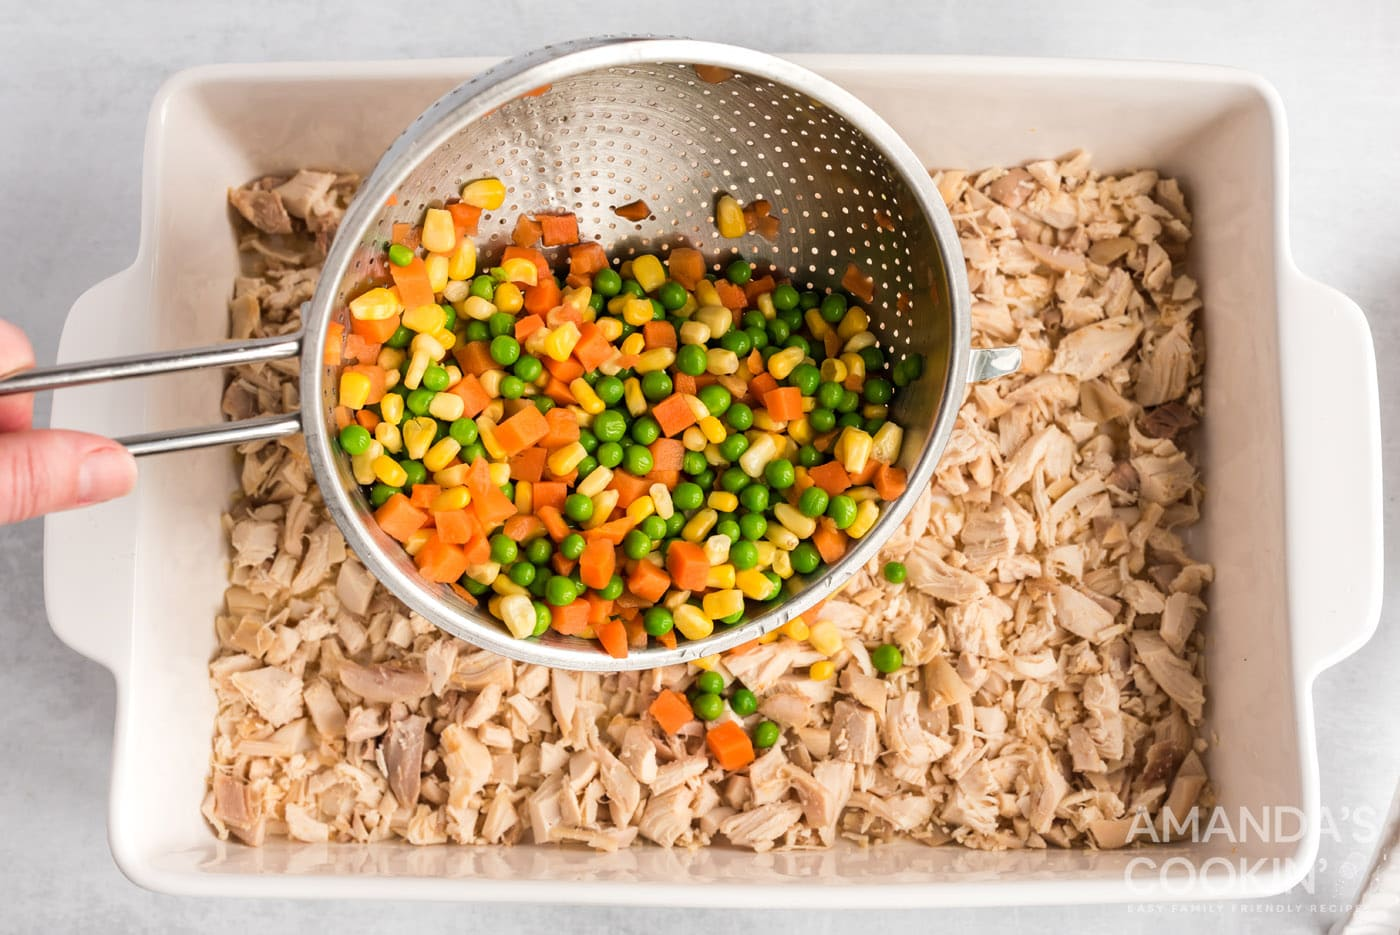 pouring frozen veggies over chicken in a pan